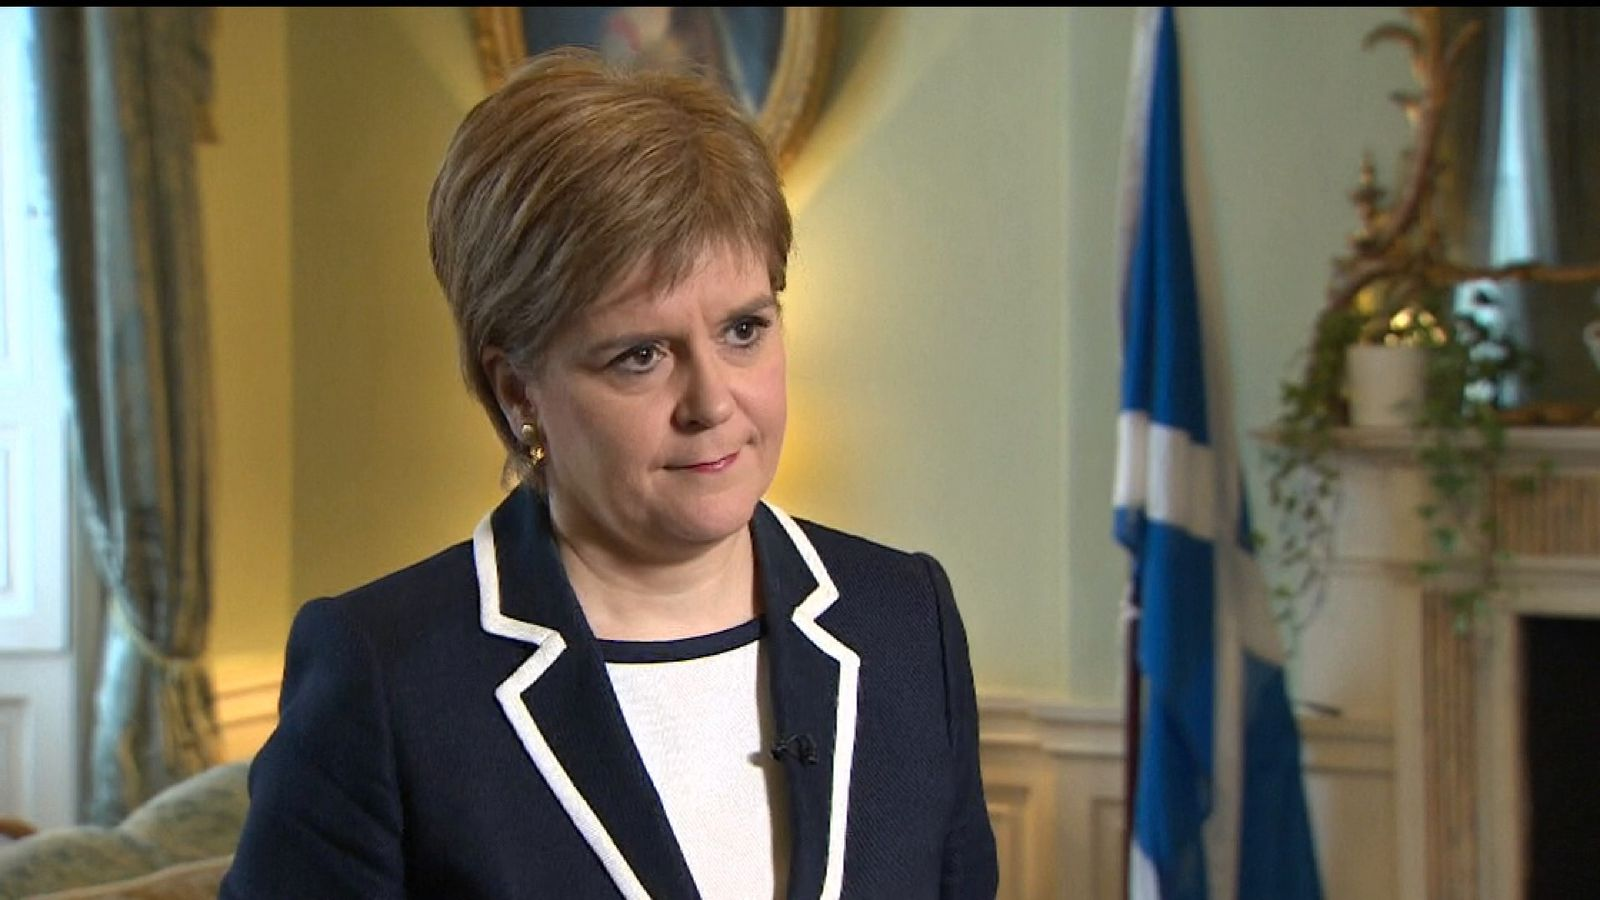 Scottish First Minister, Nicola Sturgeon